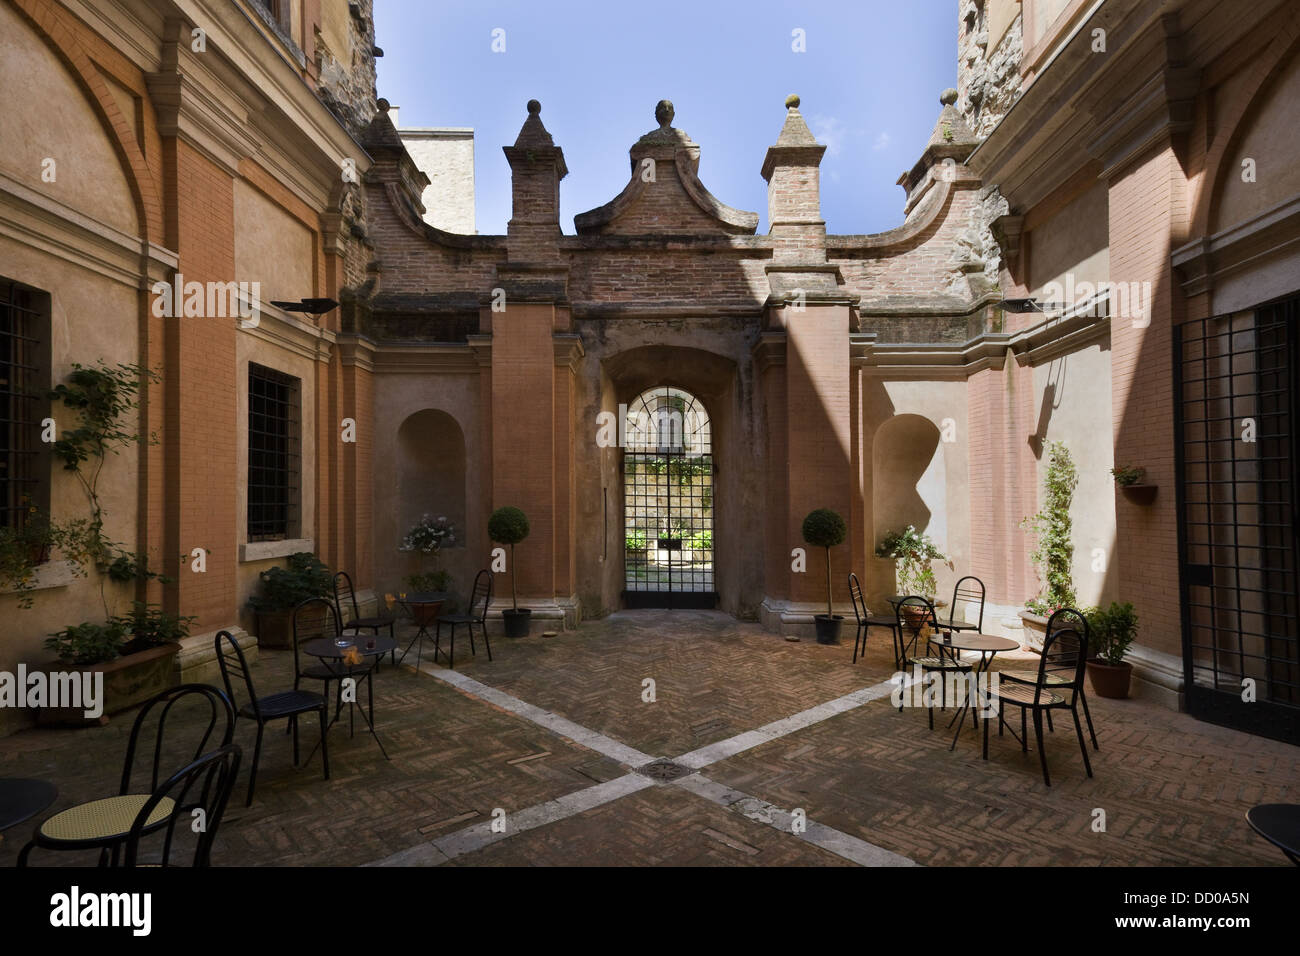 Detail of inner courtyard of Italian Renaissance palazzo, with Stock ...